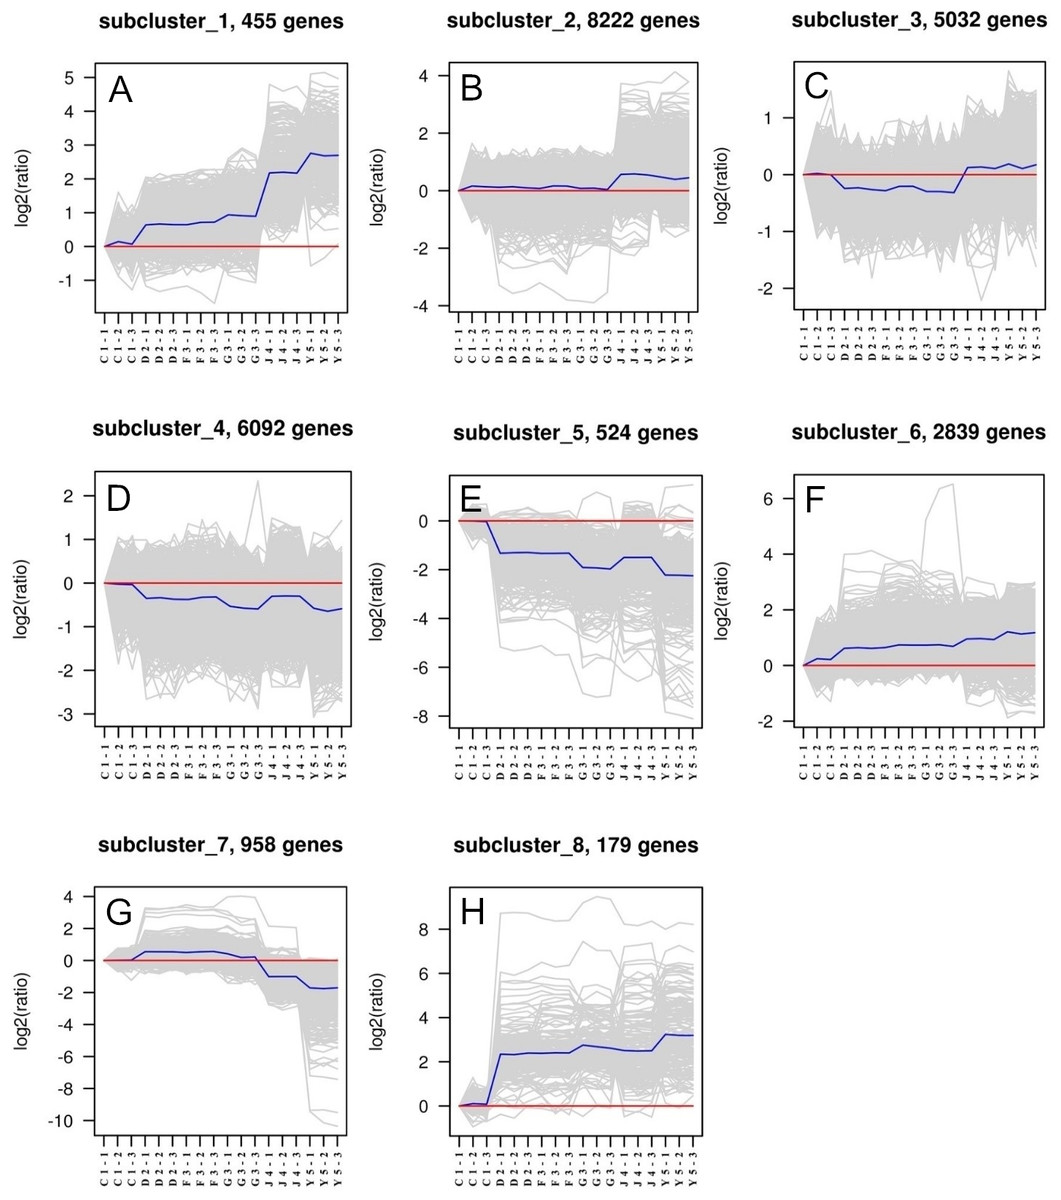 Selection of housekeeping genes as internal controls for